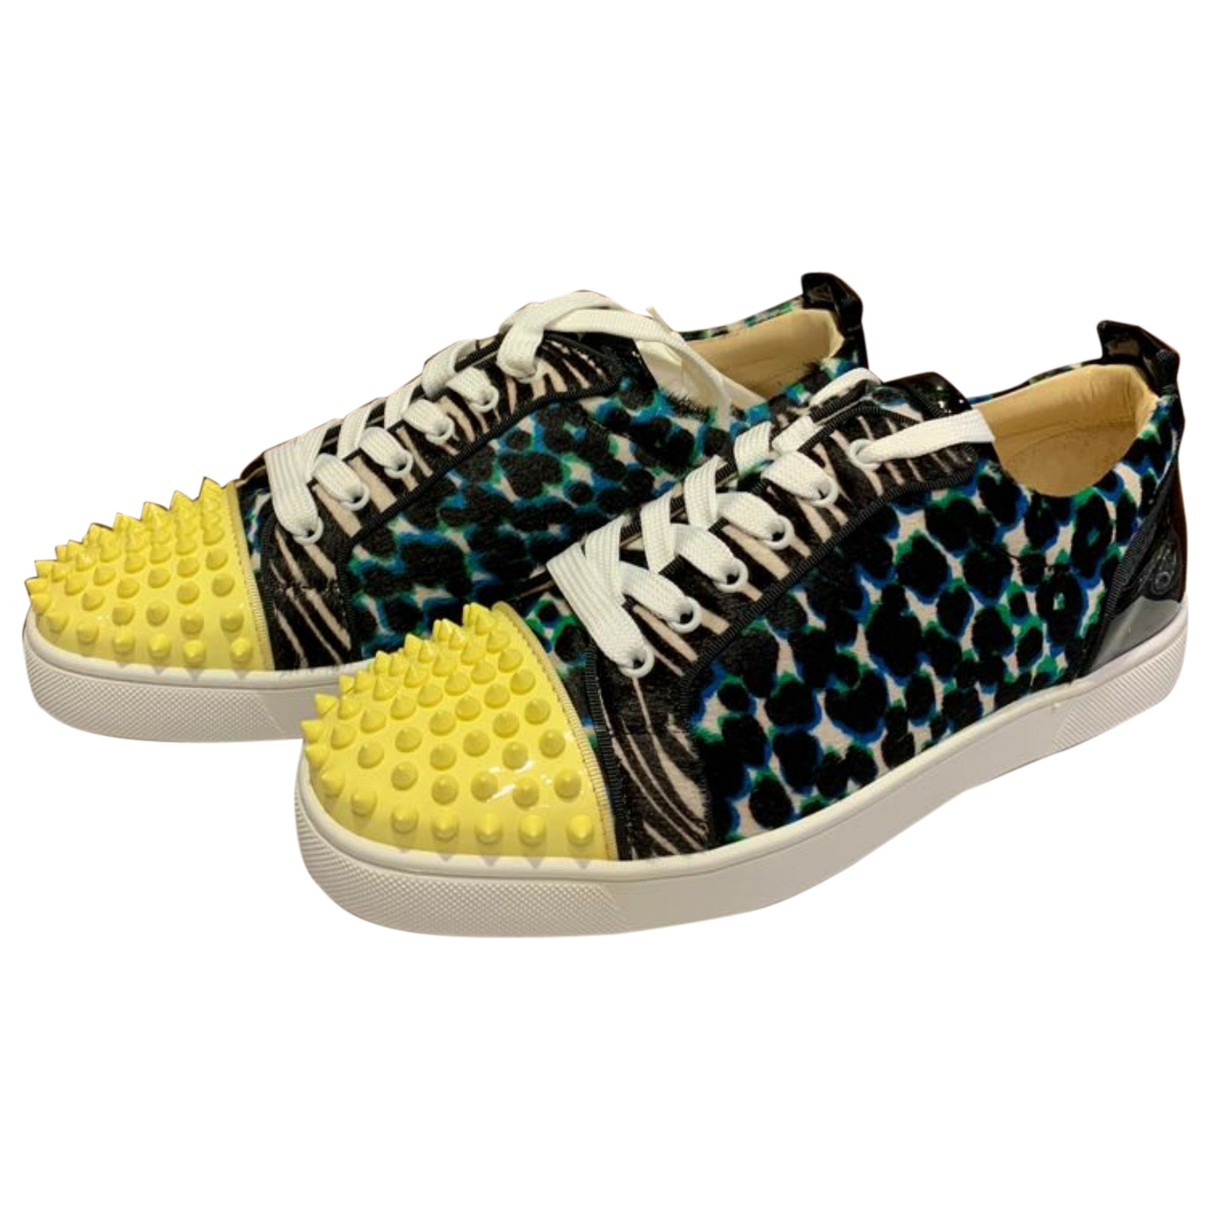 Christian Louboutin - Baskets Louis junior spike pour homme en cuir - multicolore